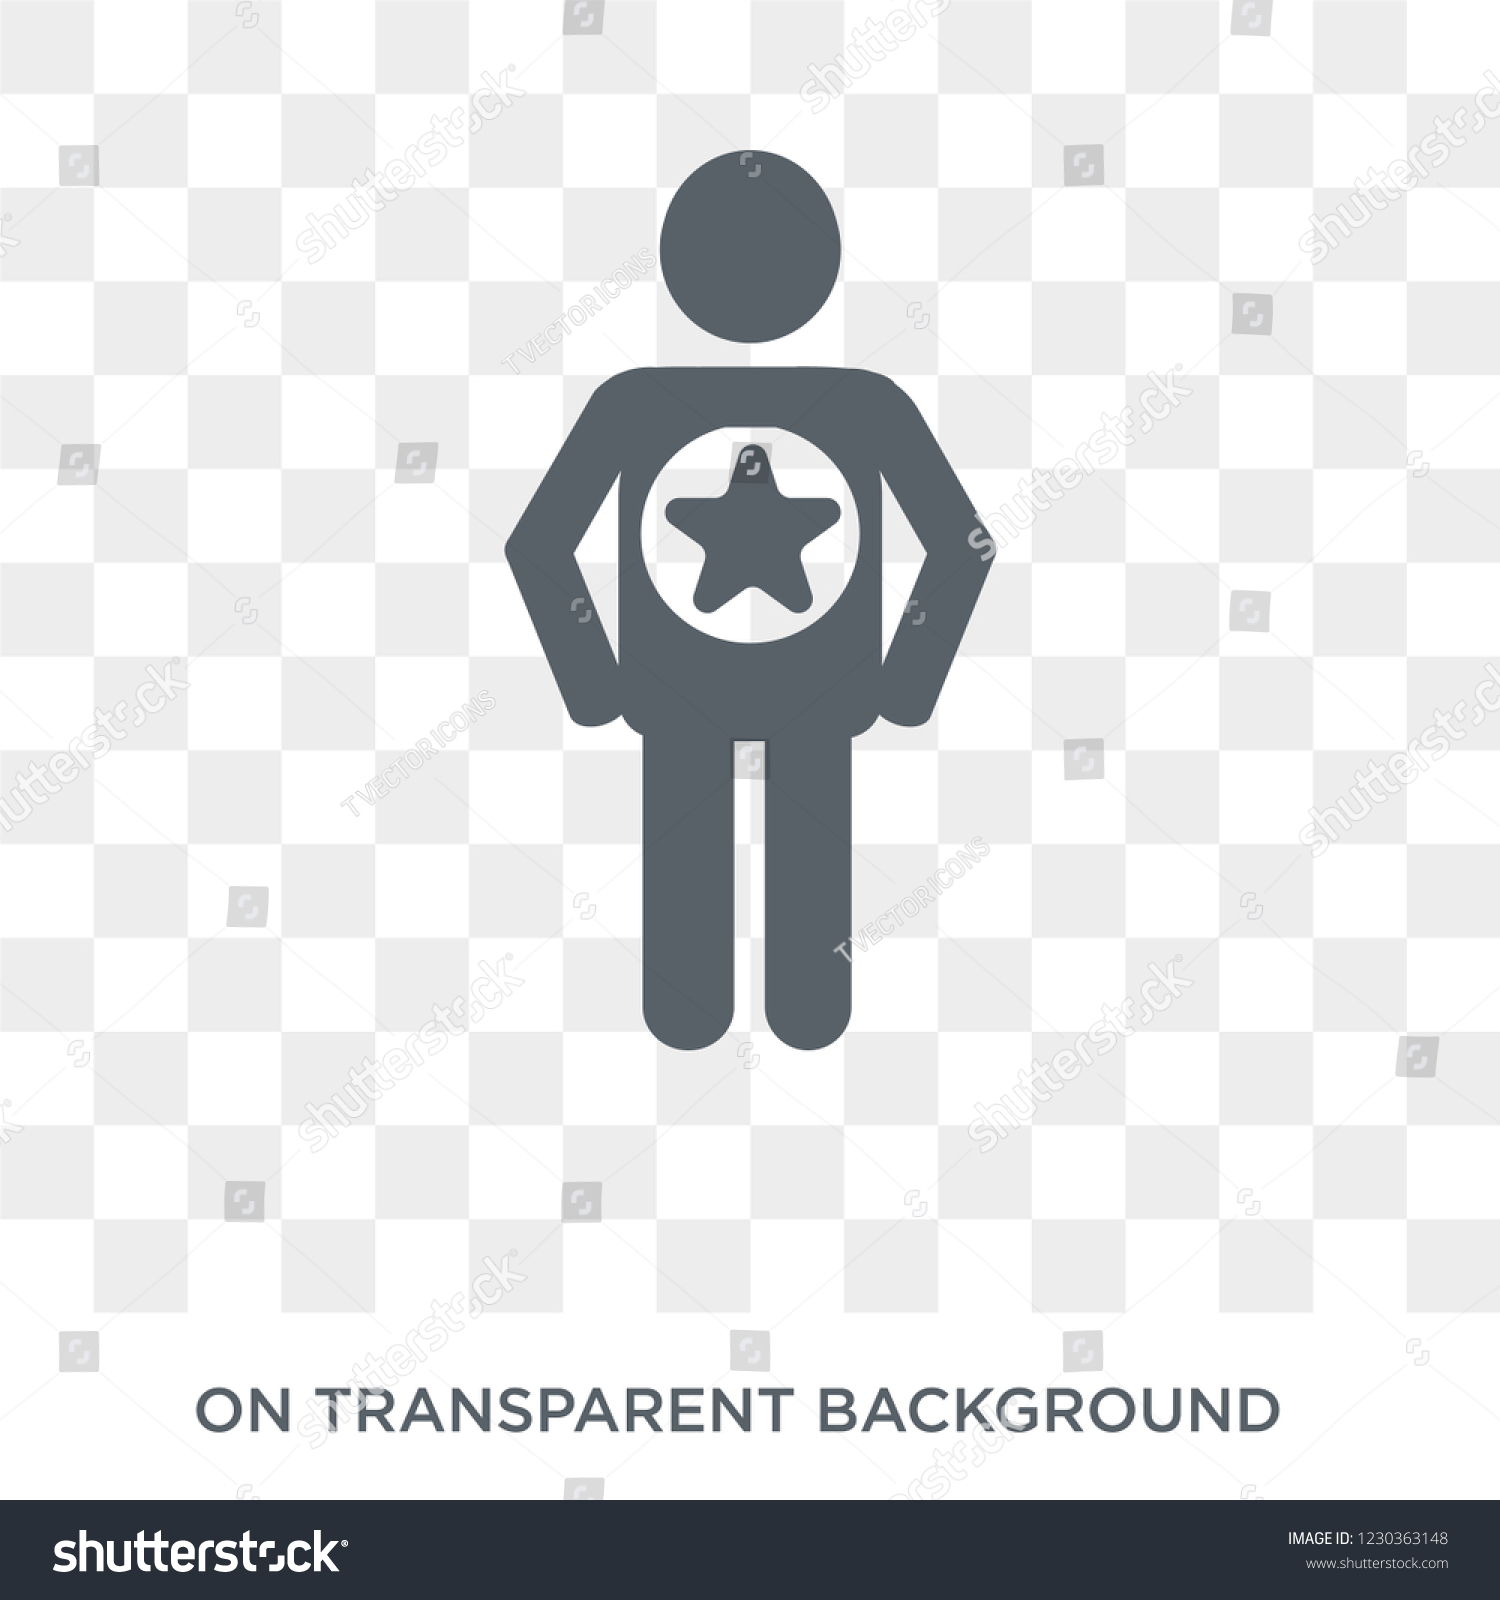 Good Human Icon Trendy Flat Vector Stock Vector Royalty Free 1230363148 The original size of the image is 2400 × 2400 px and the original resolution is 300 dpi. shutterstock